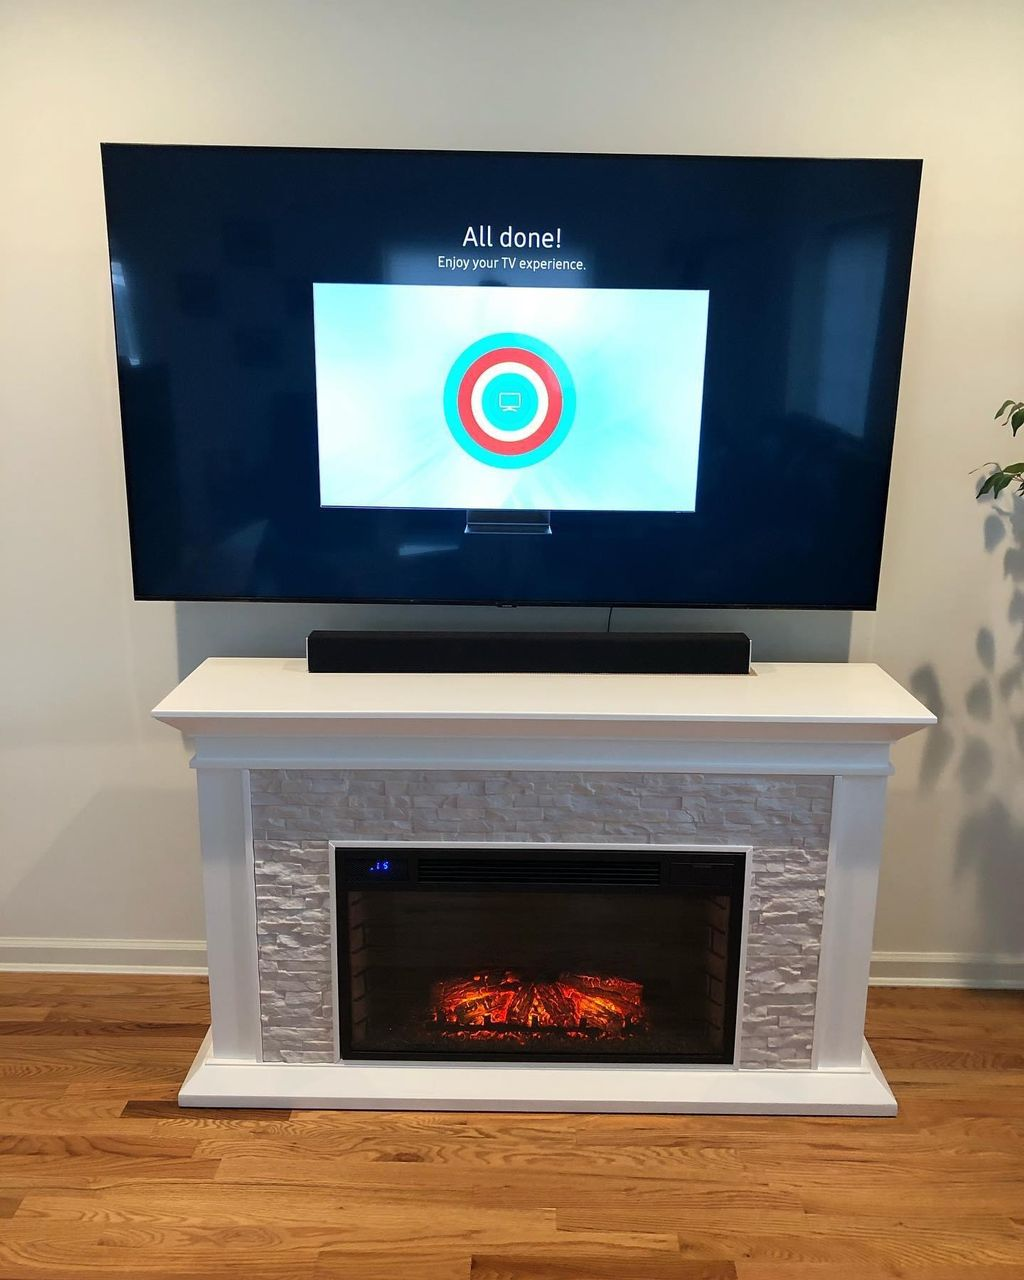 65 Samsung tv wall mount and fireplace assemble